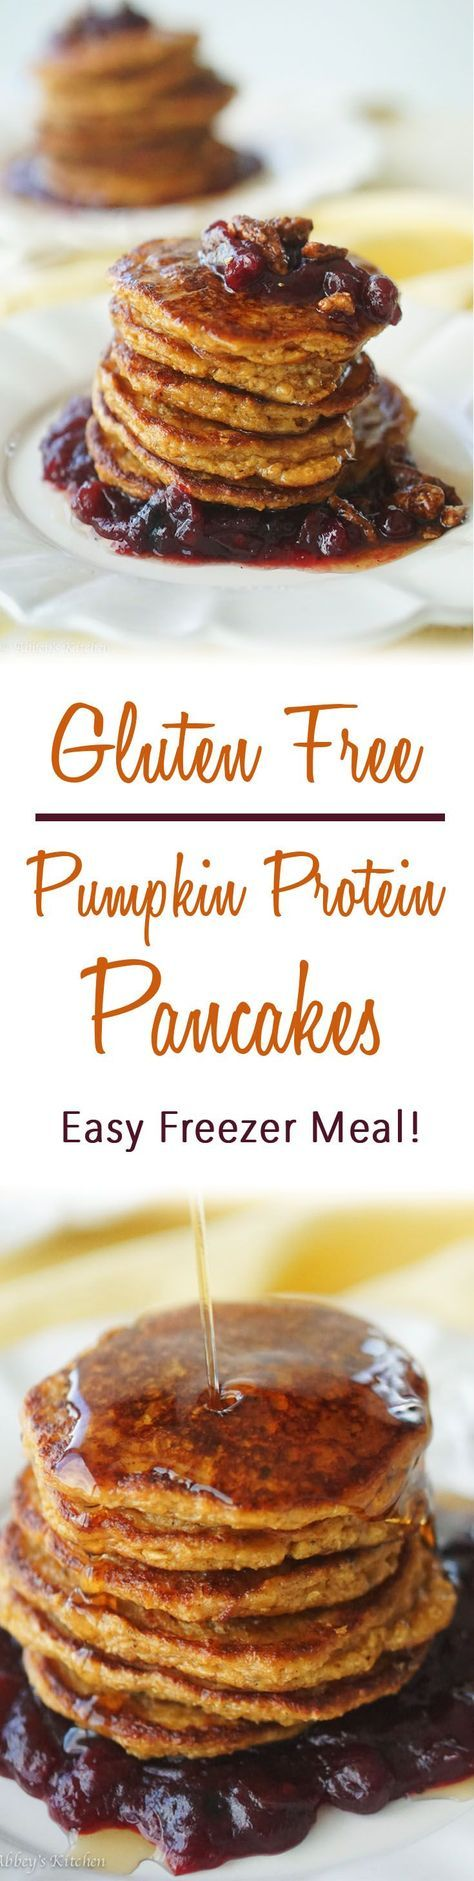 These Gluten Free Pumpkin Protein Pancakes are a delicious way to start your day, and are an easy freezer meal!